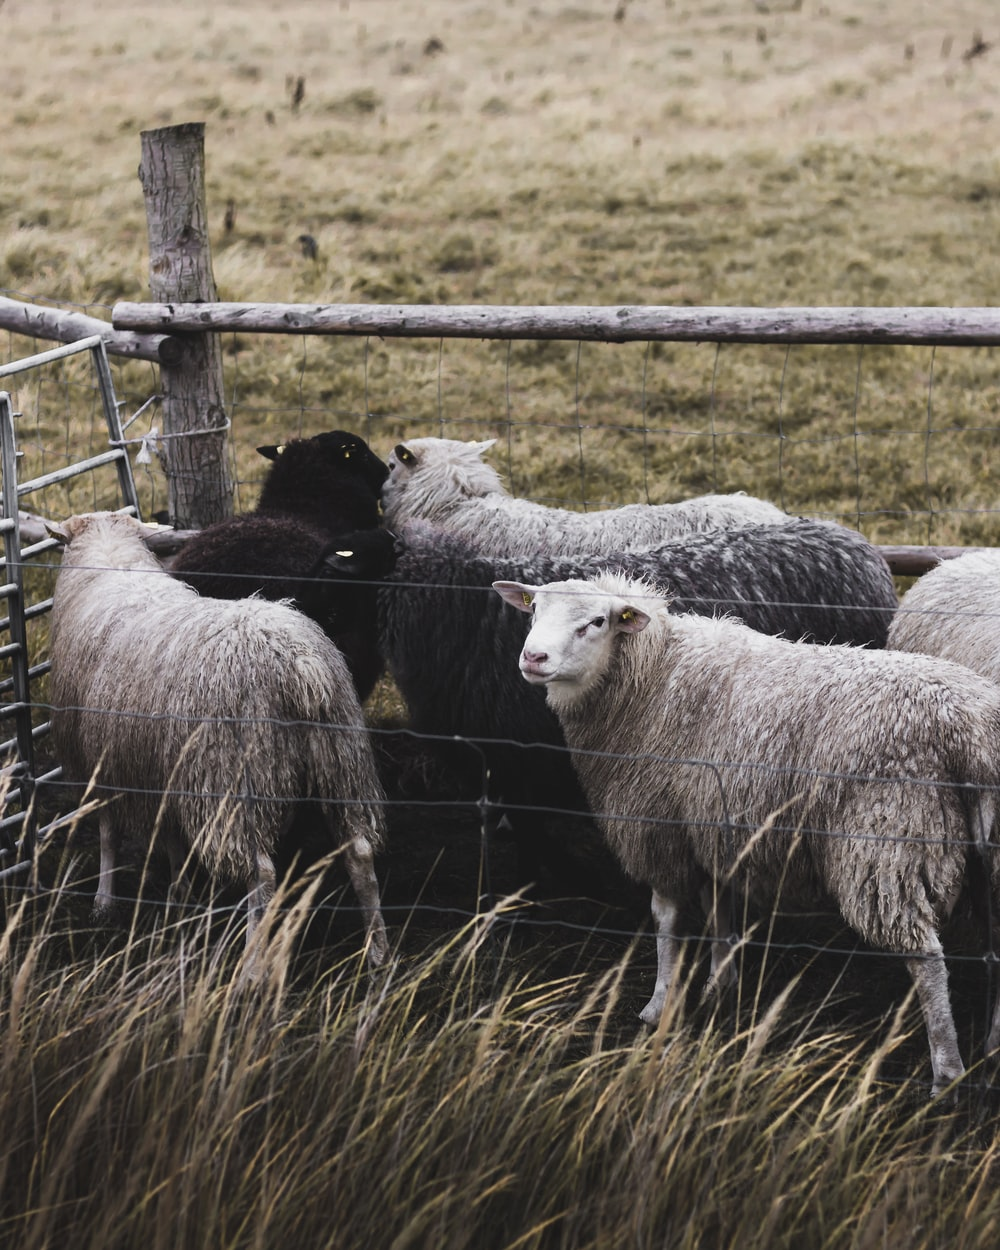 group of sheep in cage